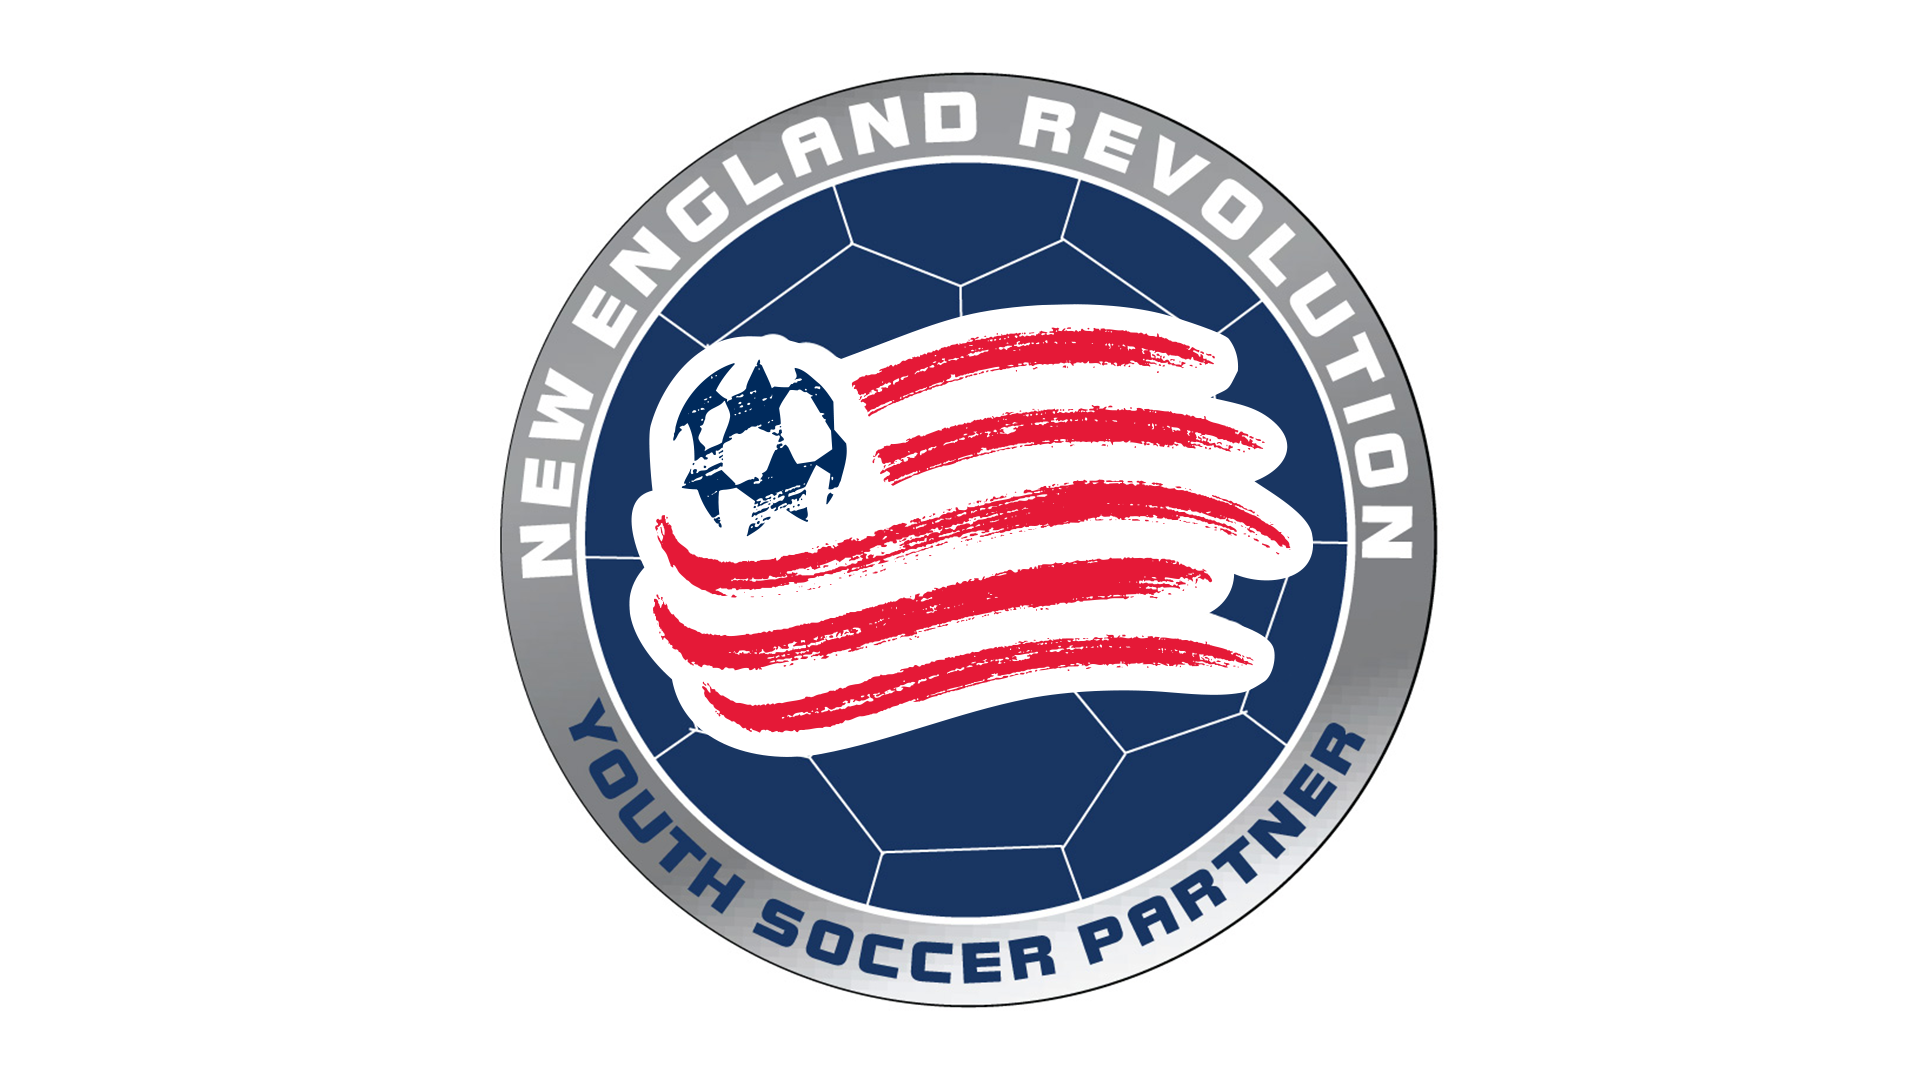 The Revolution is committed to enriching the soccer experience of youth  players, coaches, referees, volunteers, and administrators. - New England Revolution PNG